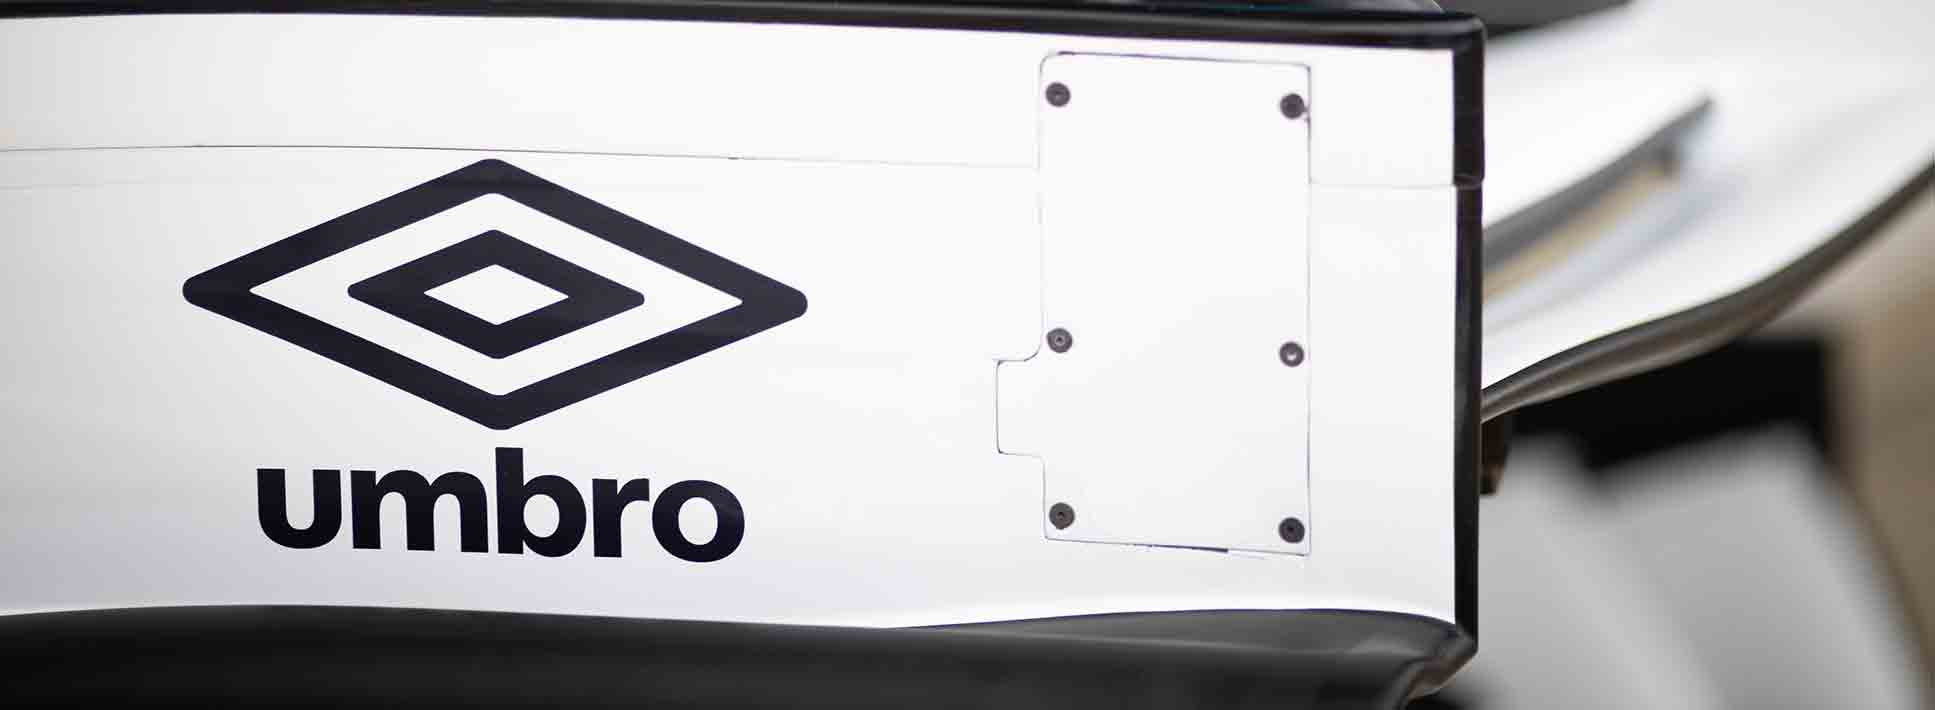 Williams Racing Confirms Umbro UK as Official Team Kit Supplier